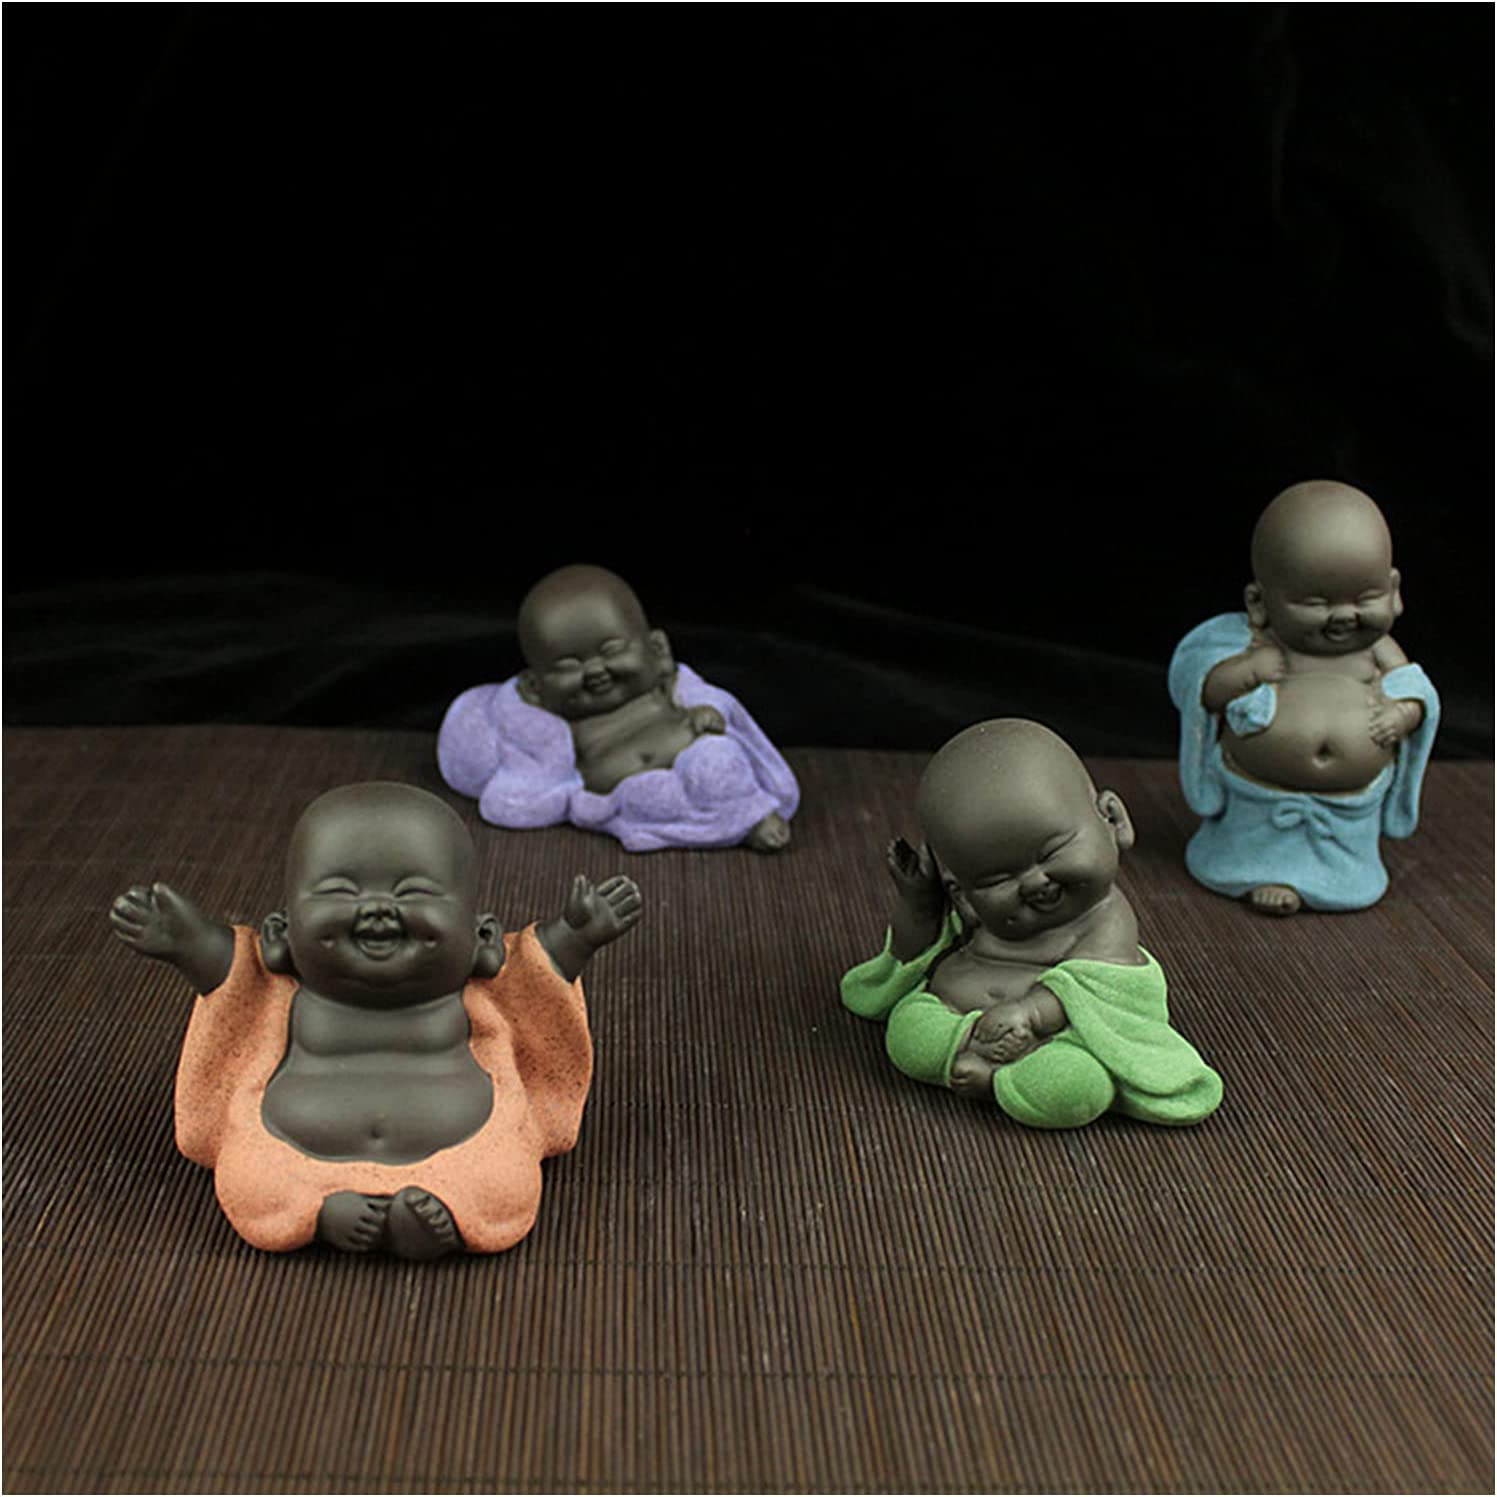 shipfree MOZHIXUE Laughing Buddha Statue Max 66% OFF Garden Pieces St 4